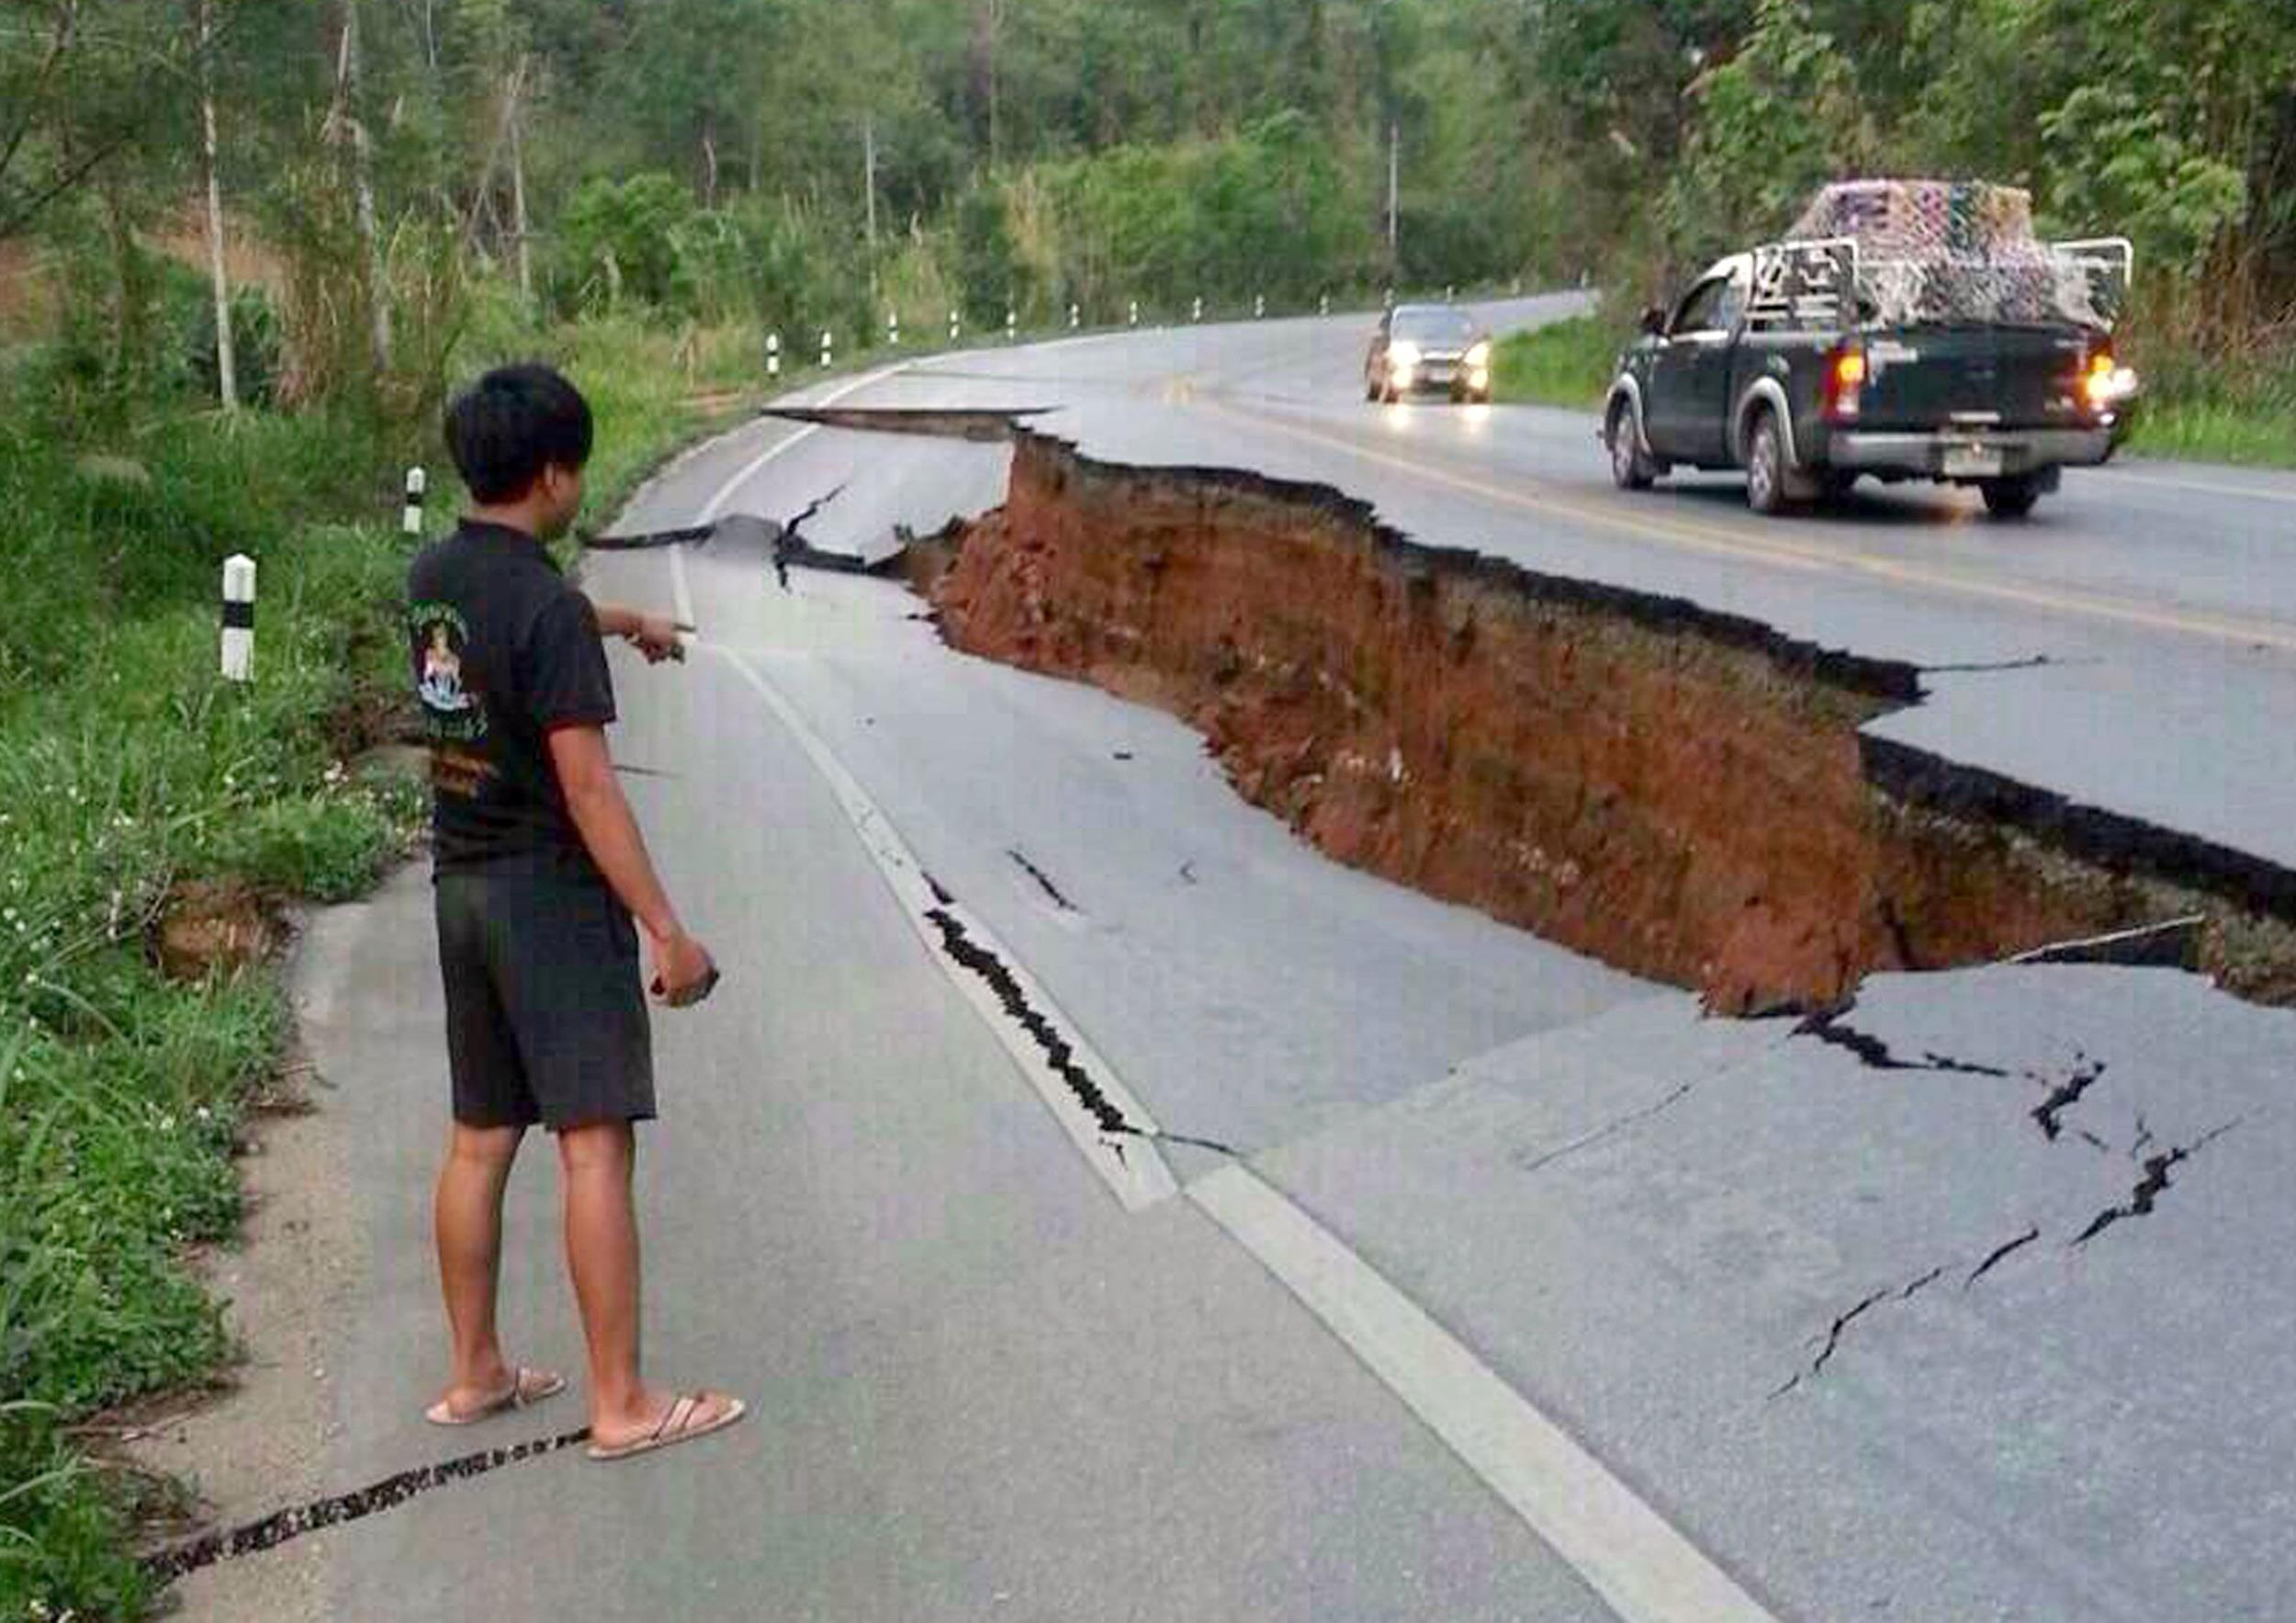 Image: earthquake in Phan district of Chiang Rai province, northern Thailand,